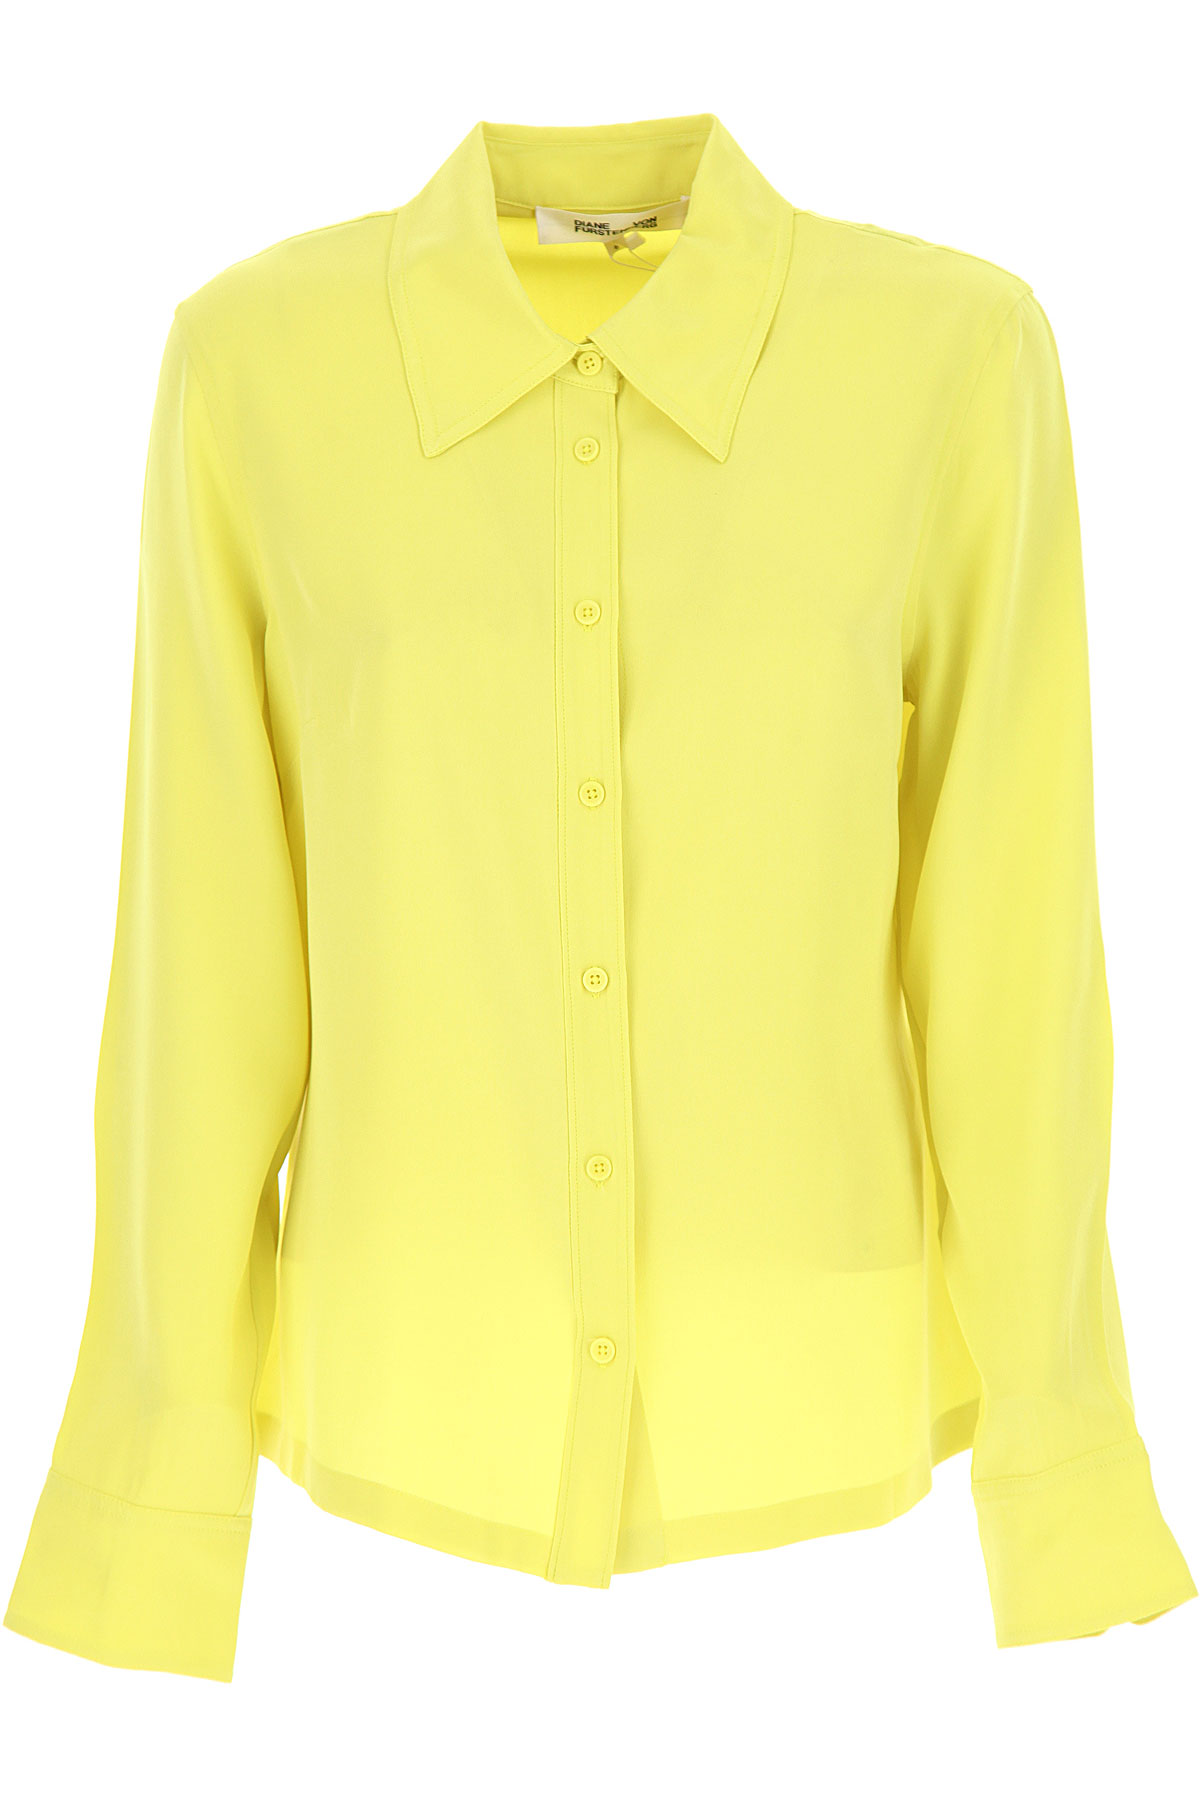 Diane Von Furstenberg Top for Women On Sale, Acid Yellow, Silk, 2019, 4 6 8